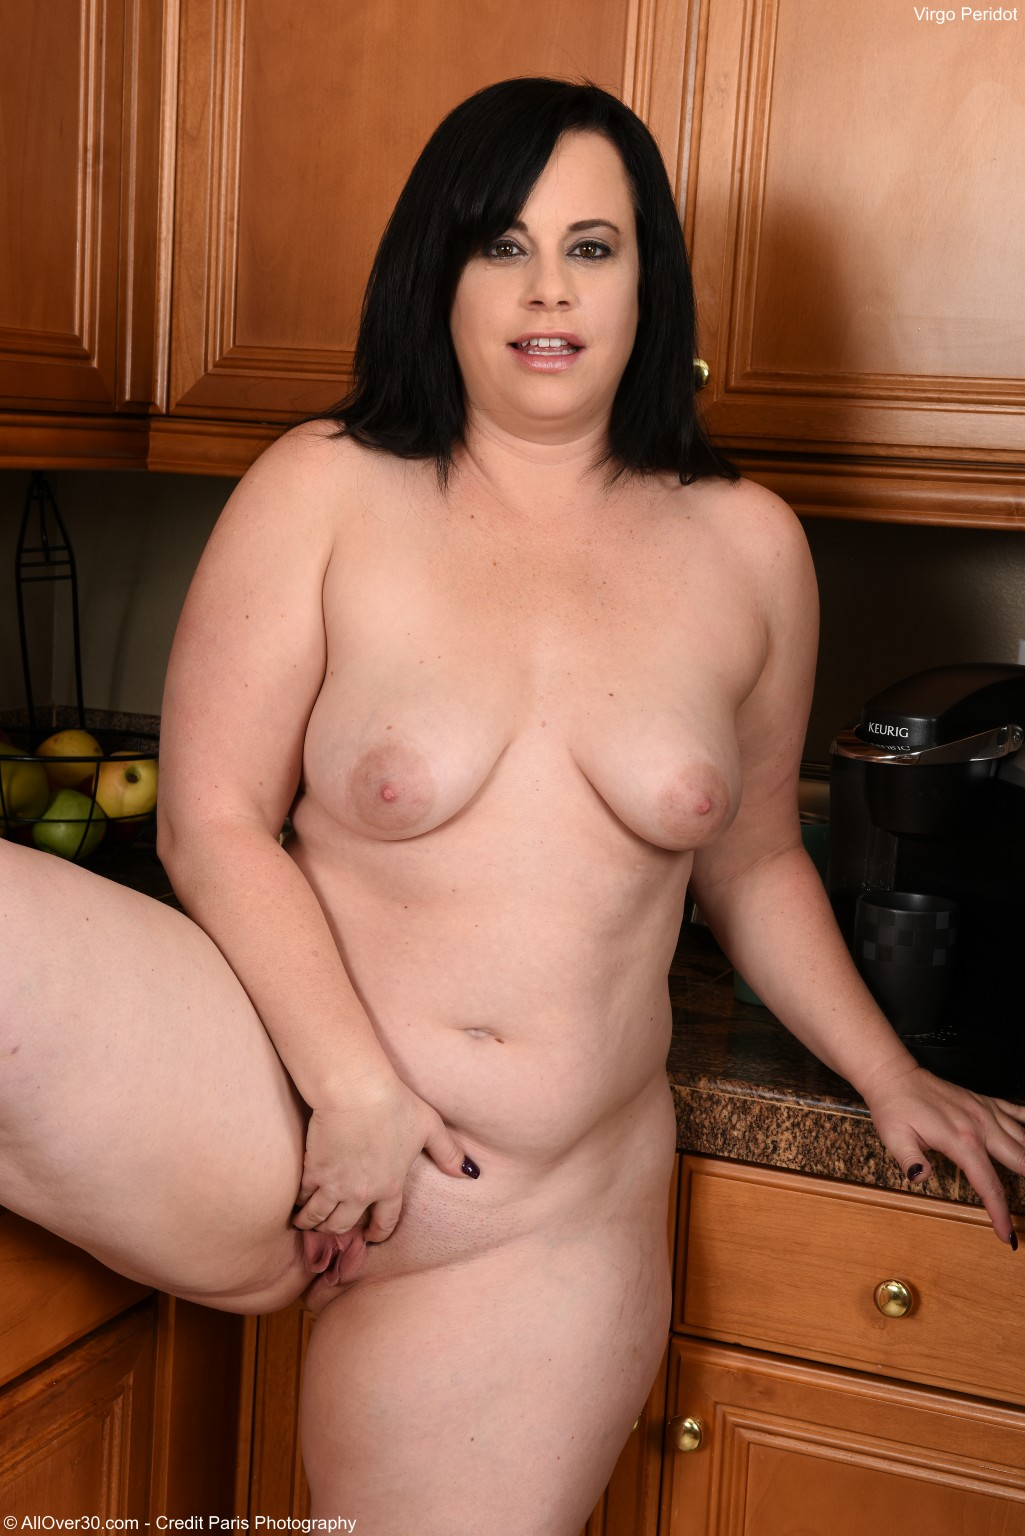 Big Breasted Curvaceous Mummy Virgo Peridot Inside the Kitchen